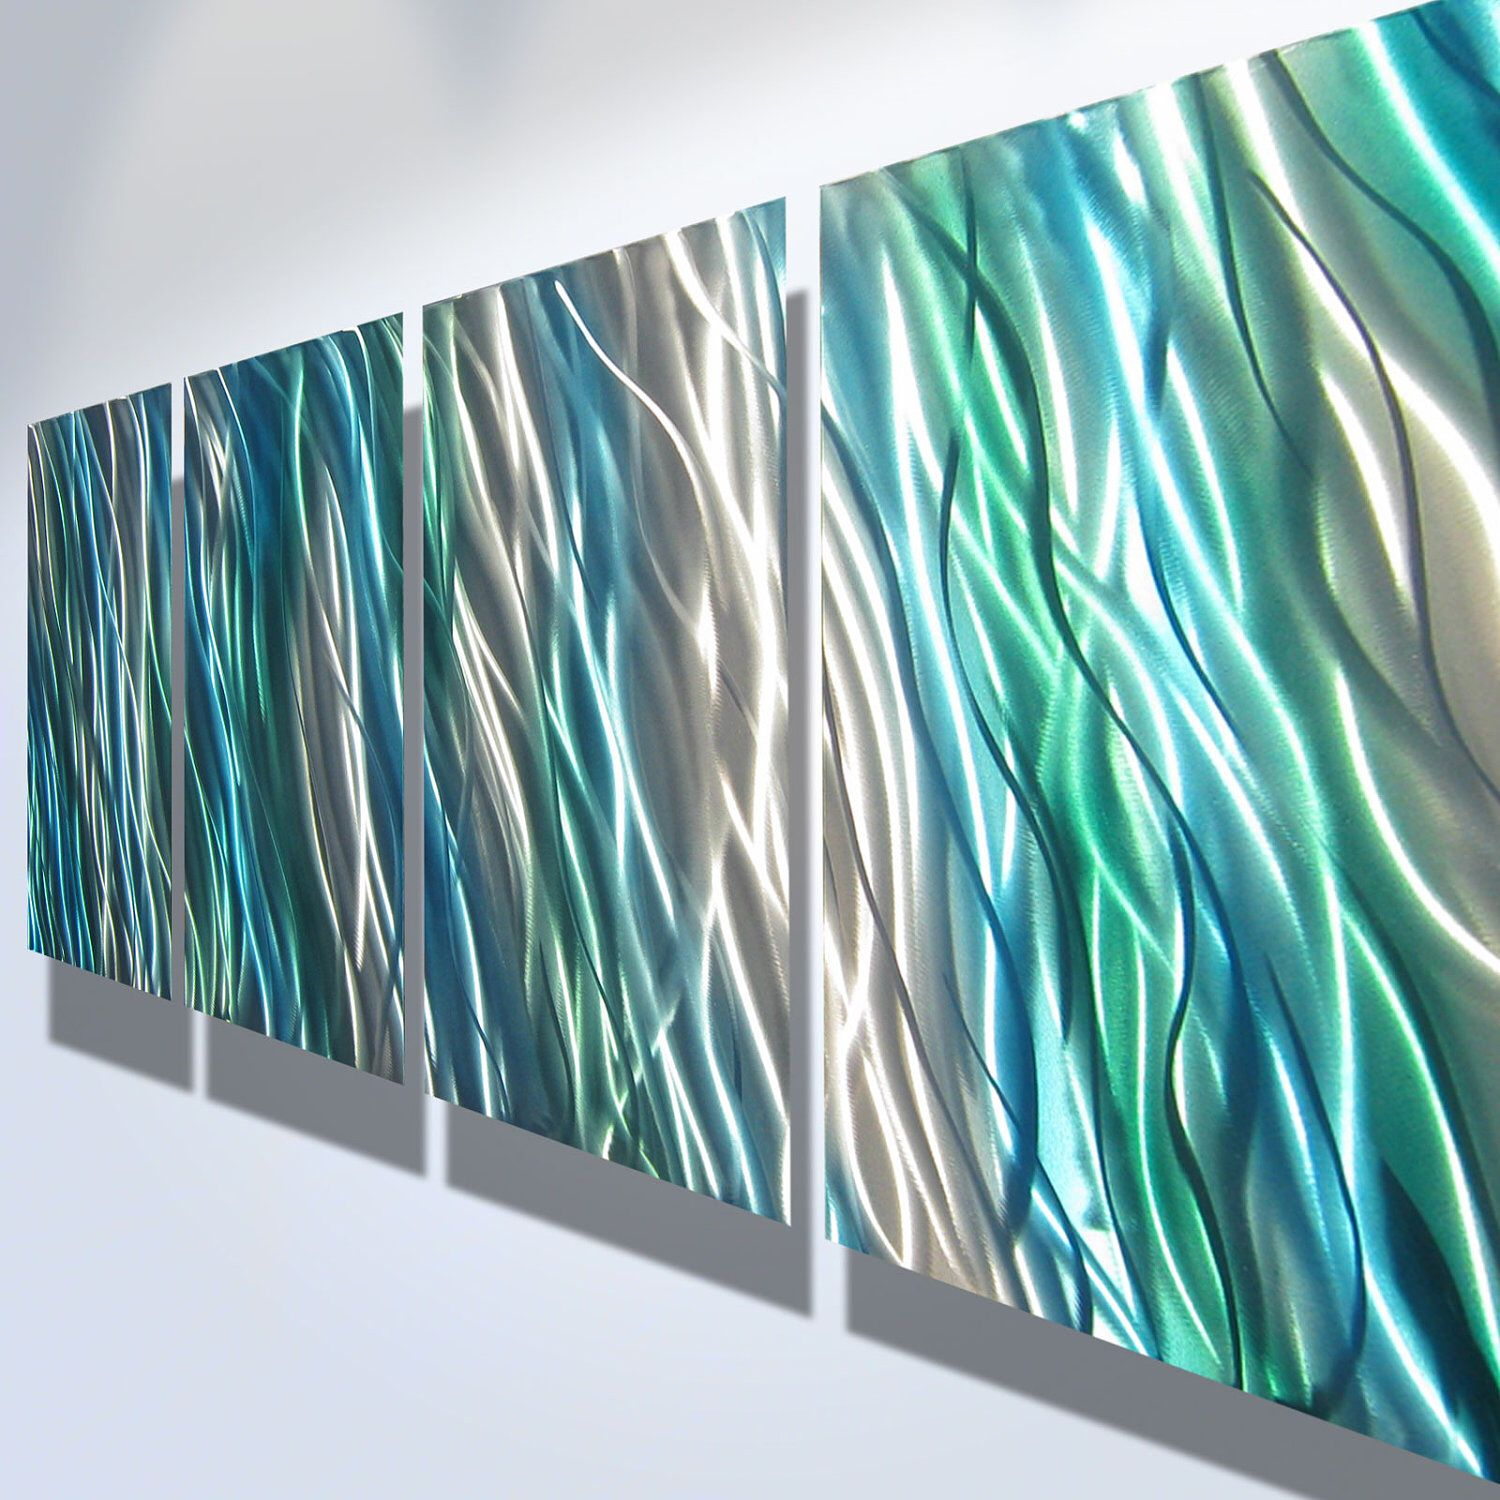 New Design Wall Art : Metal wall art decor abstract contemporary modern